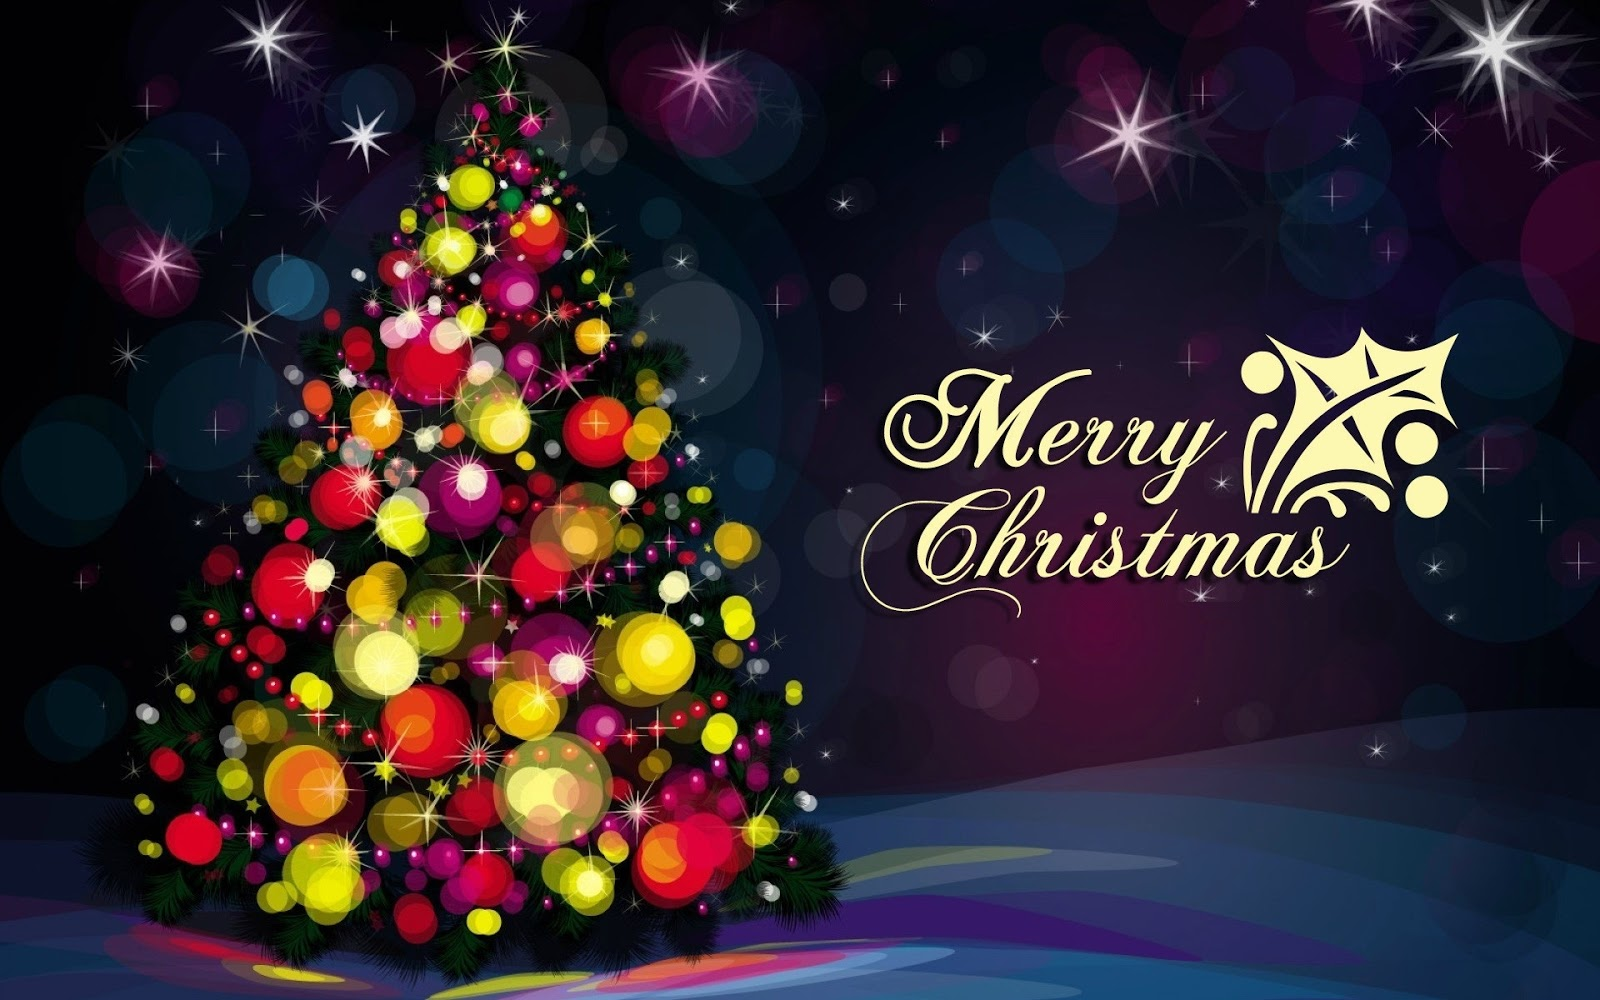 Happy christmas day hd images free download